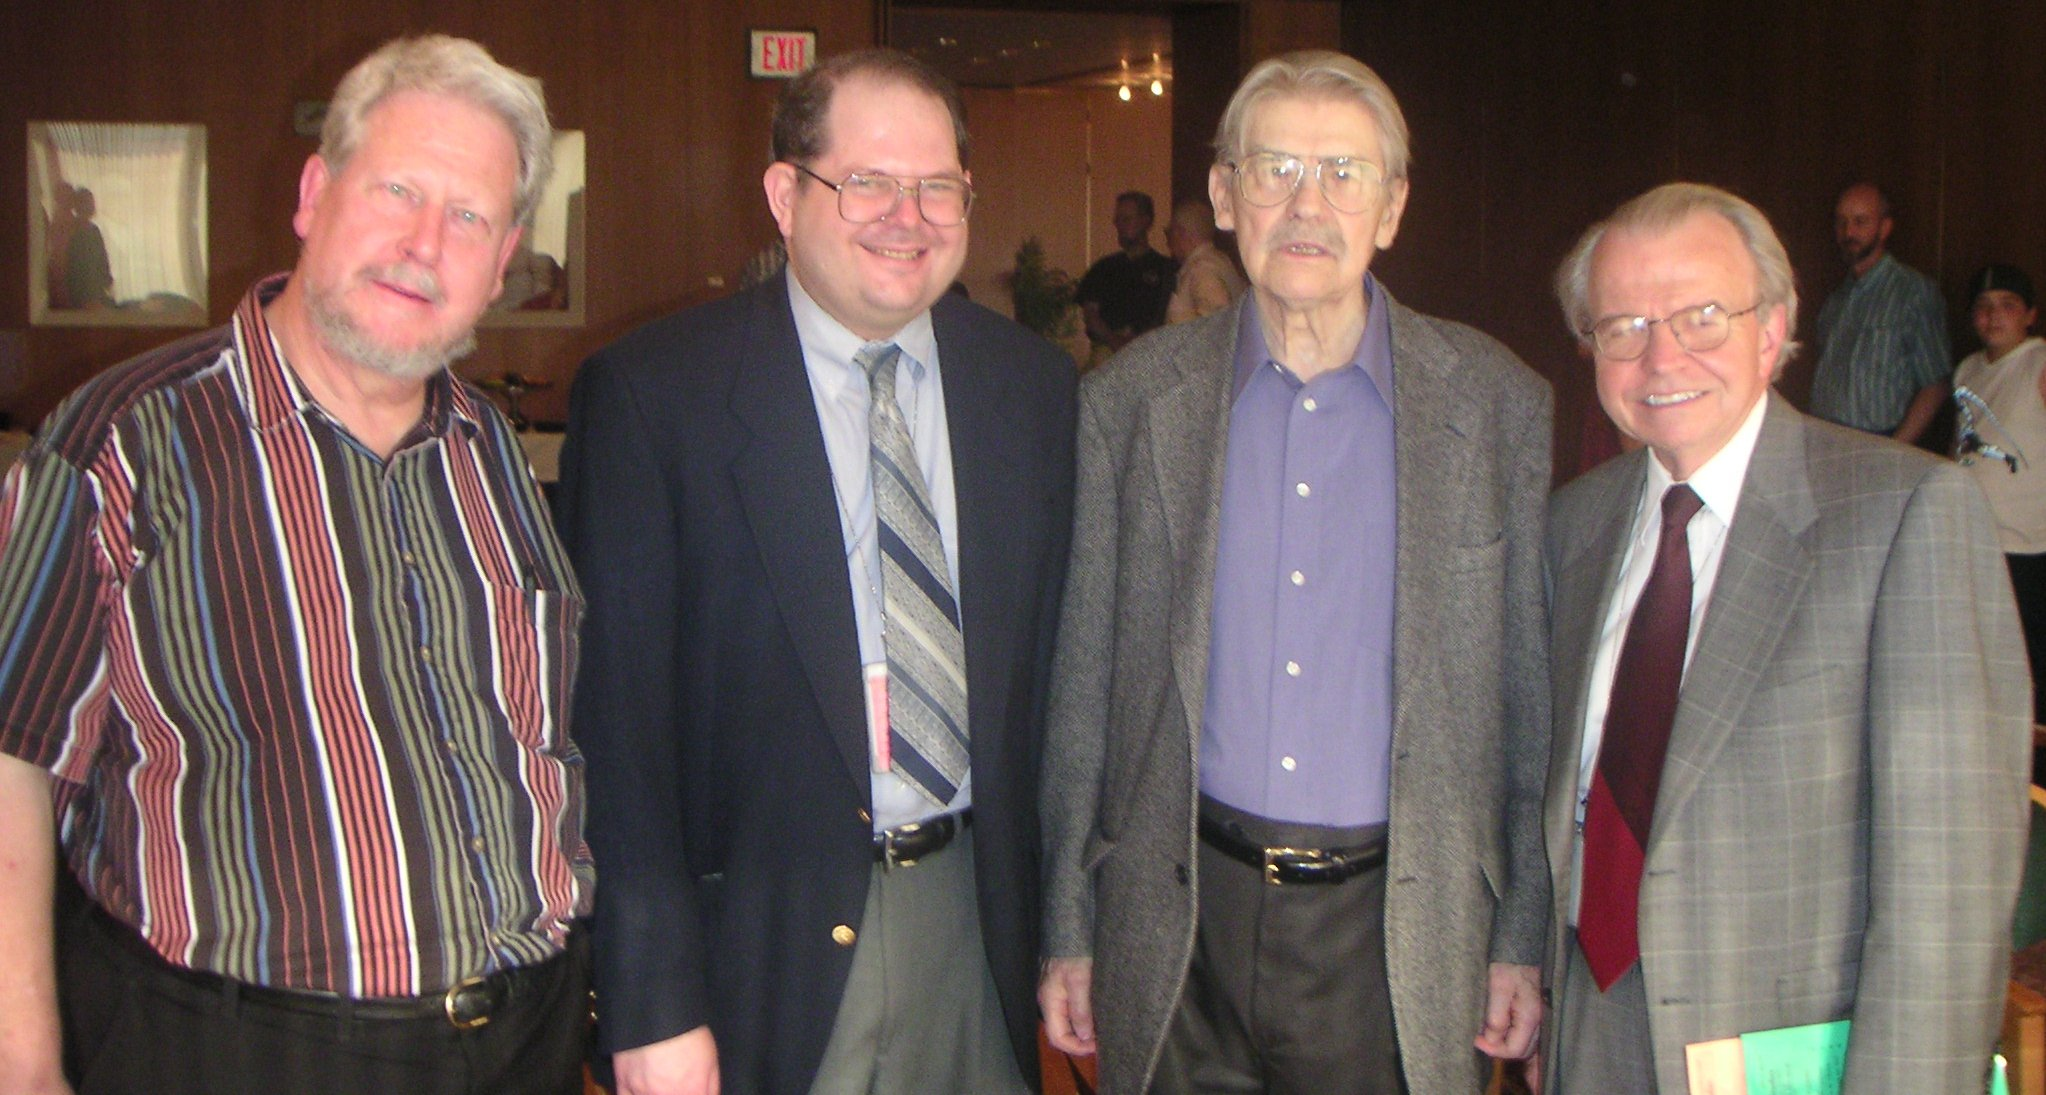 JohnColeWJMbtJMM.jpg - Jean-Michel, Brian Taves, Walter James Miller and John Cole